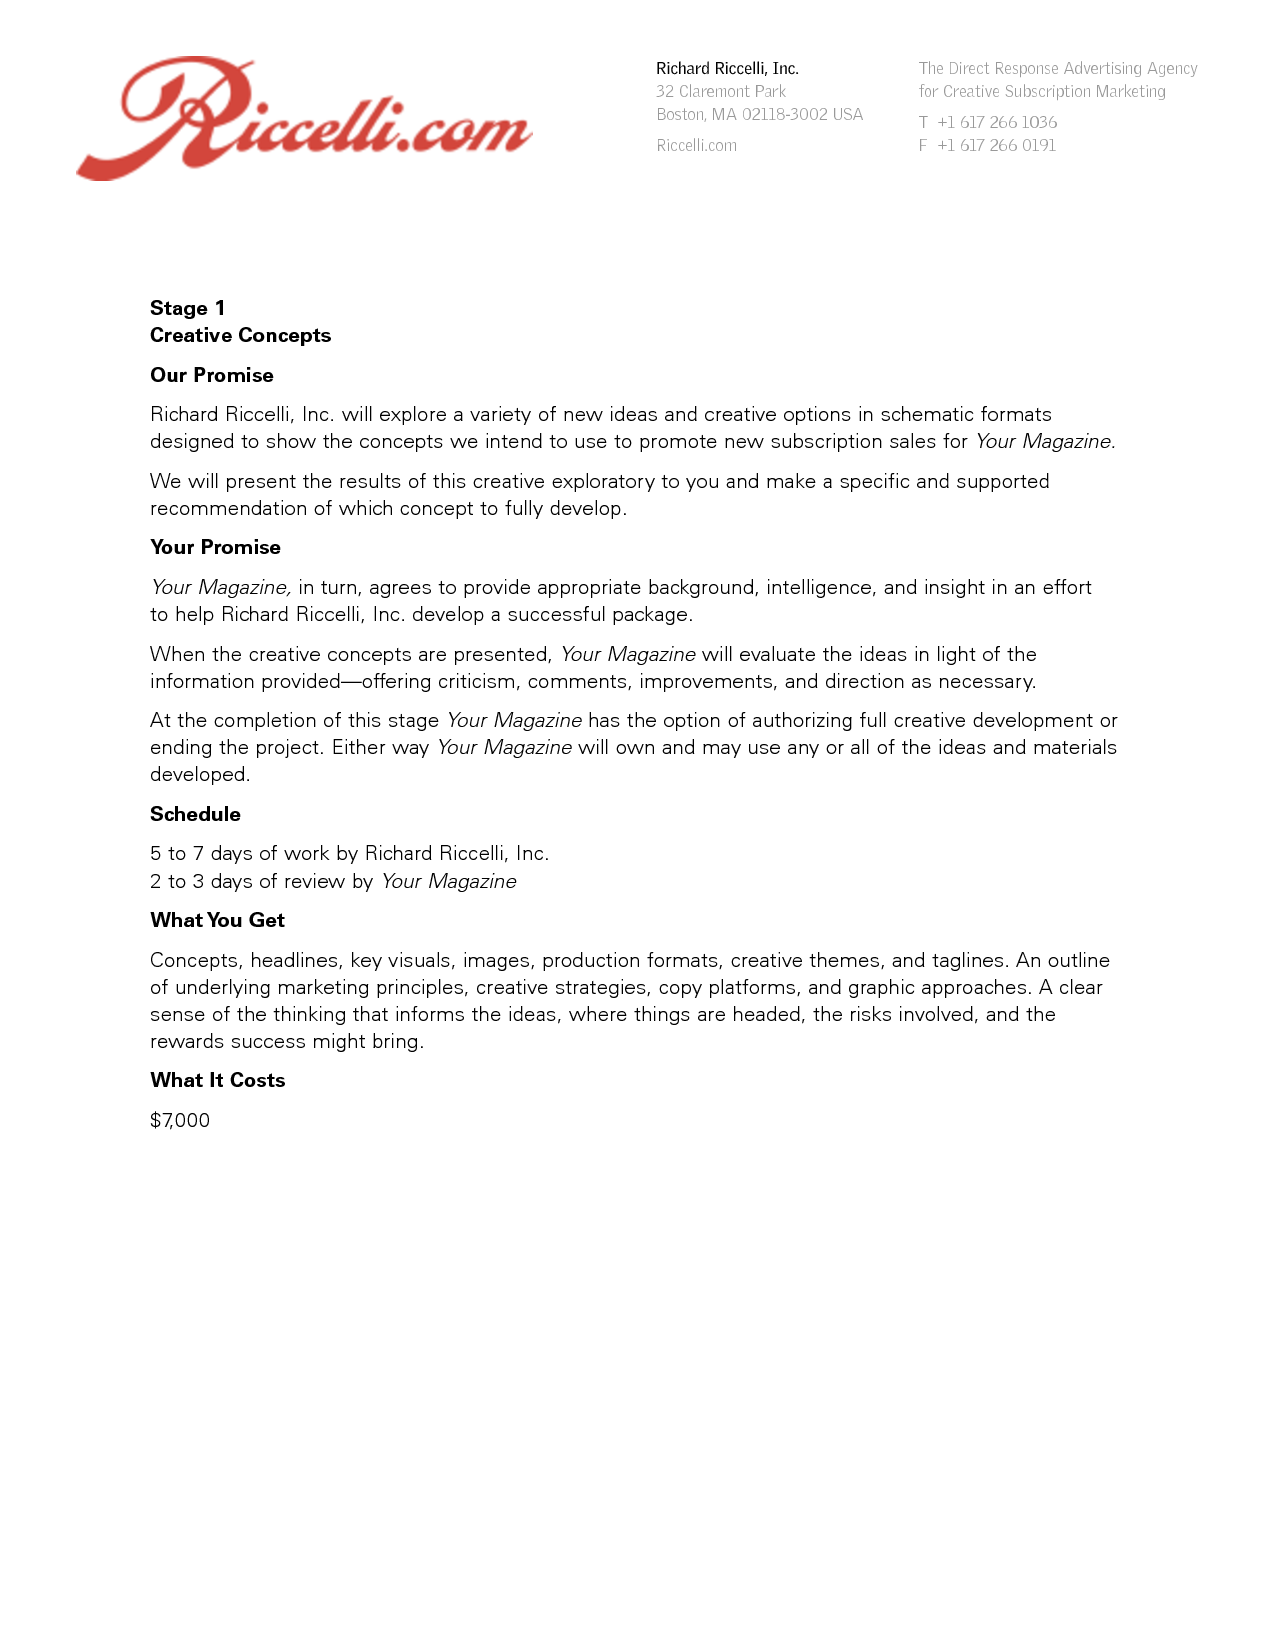 Proposal Letter Advertising Proposals Pinterest – Marketing Proposal Letter